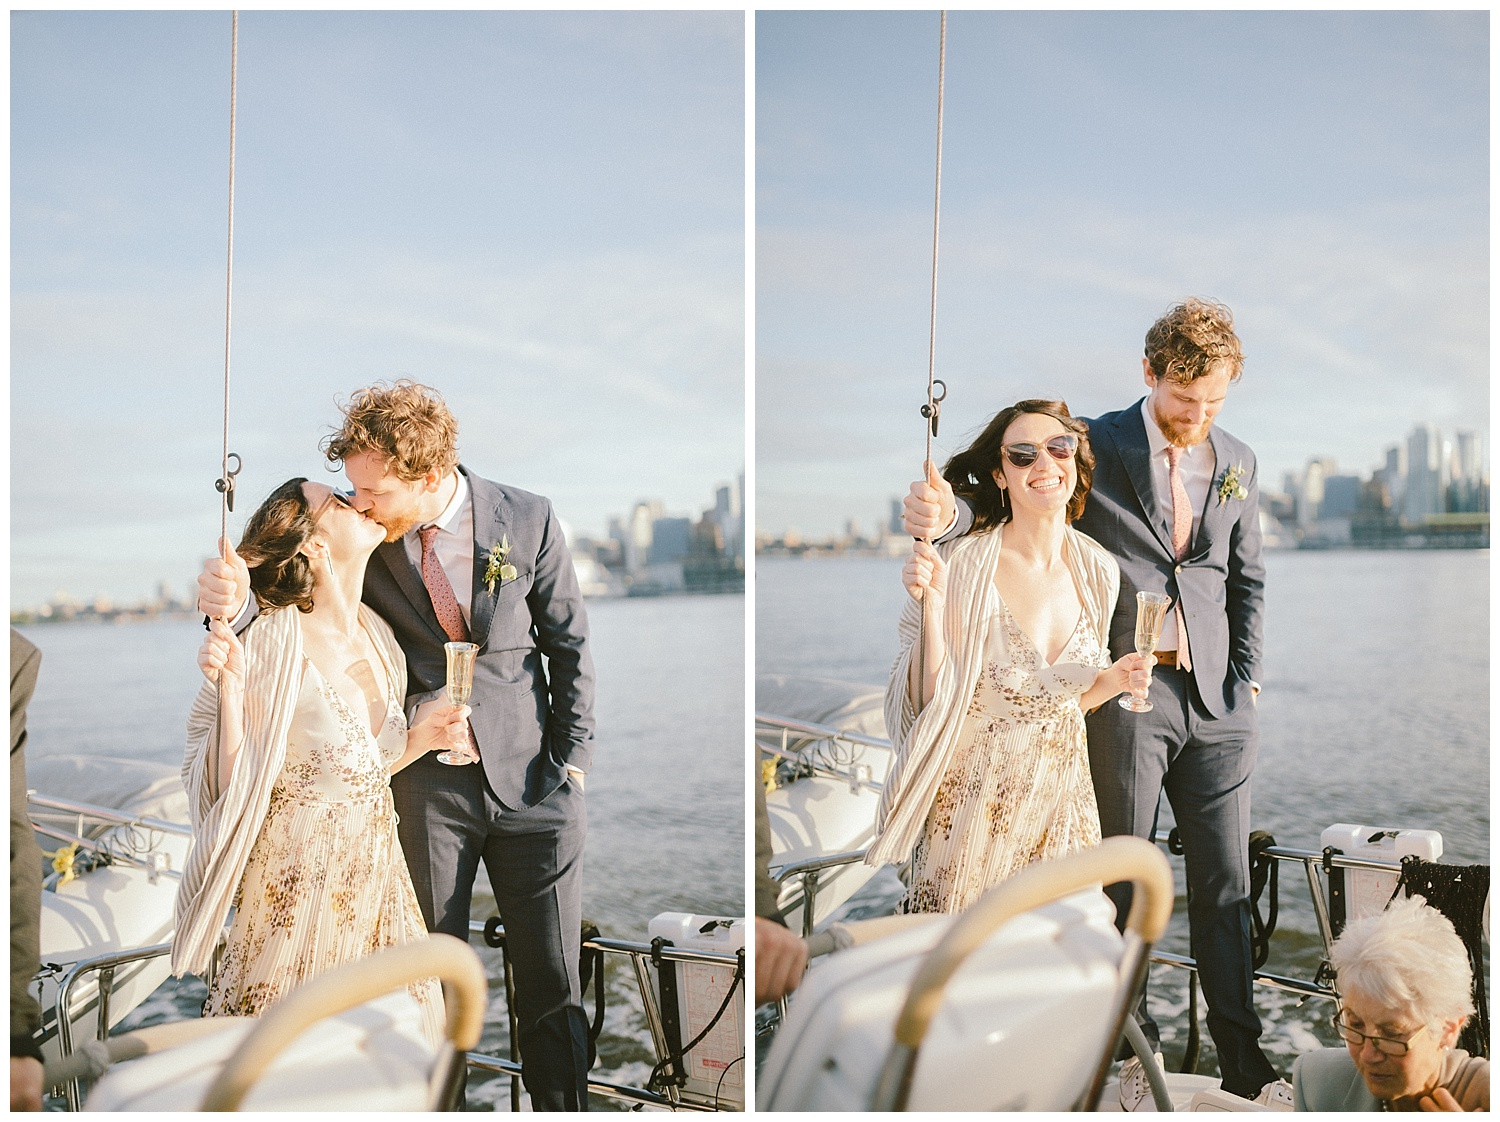 Hong Kong Vancouver fine art prewedding wedding photography photographer Mattie C.00042.jpg